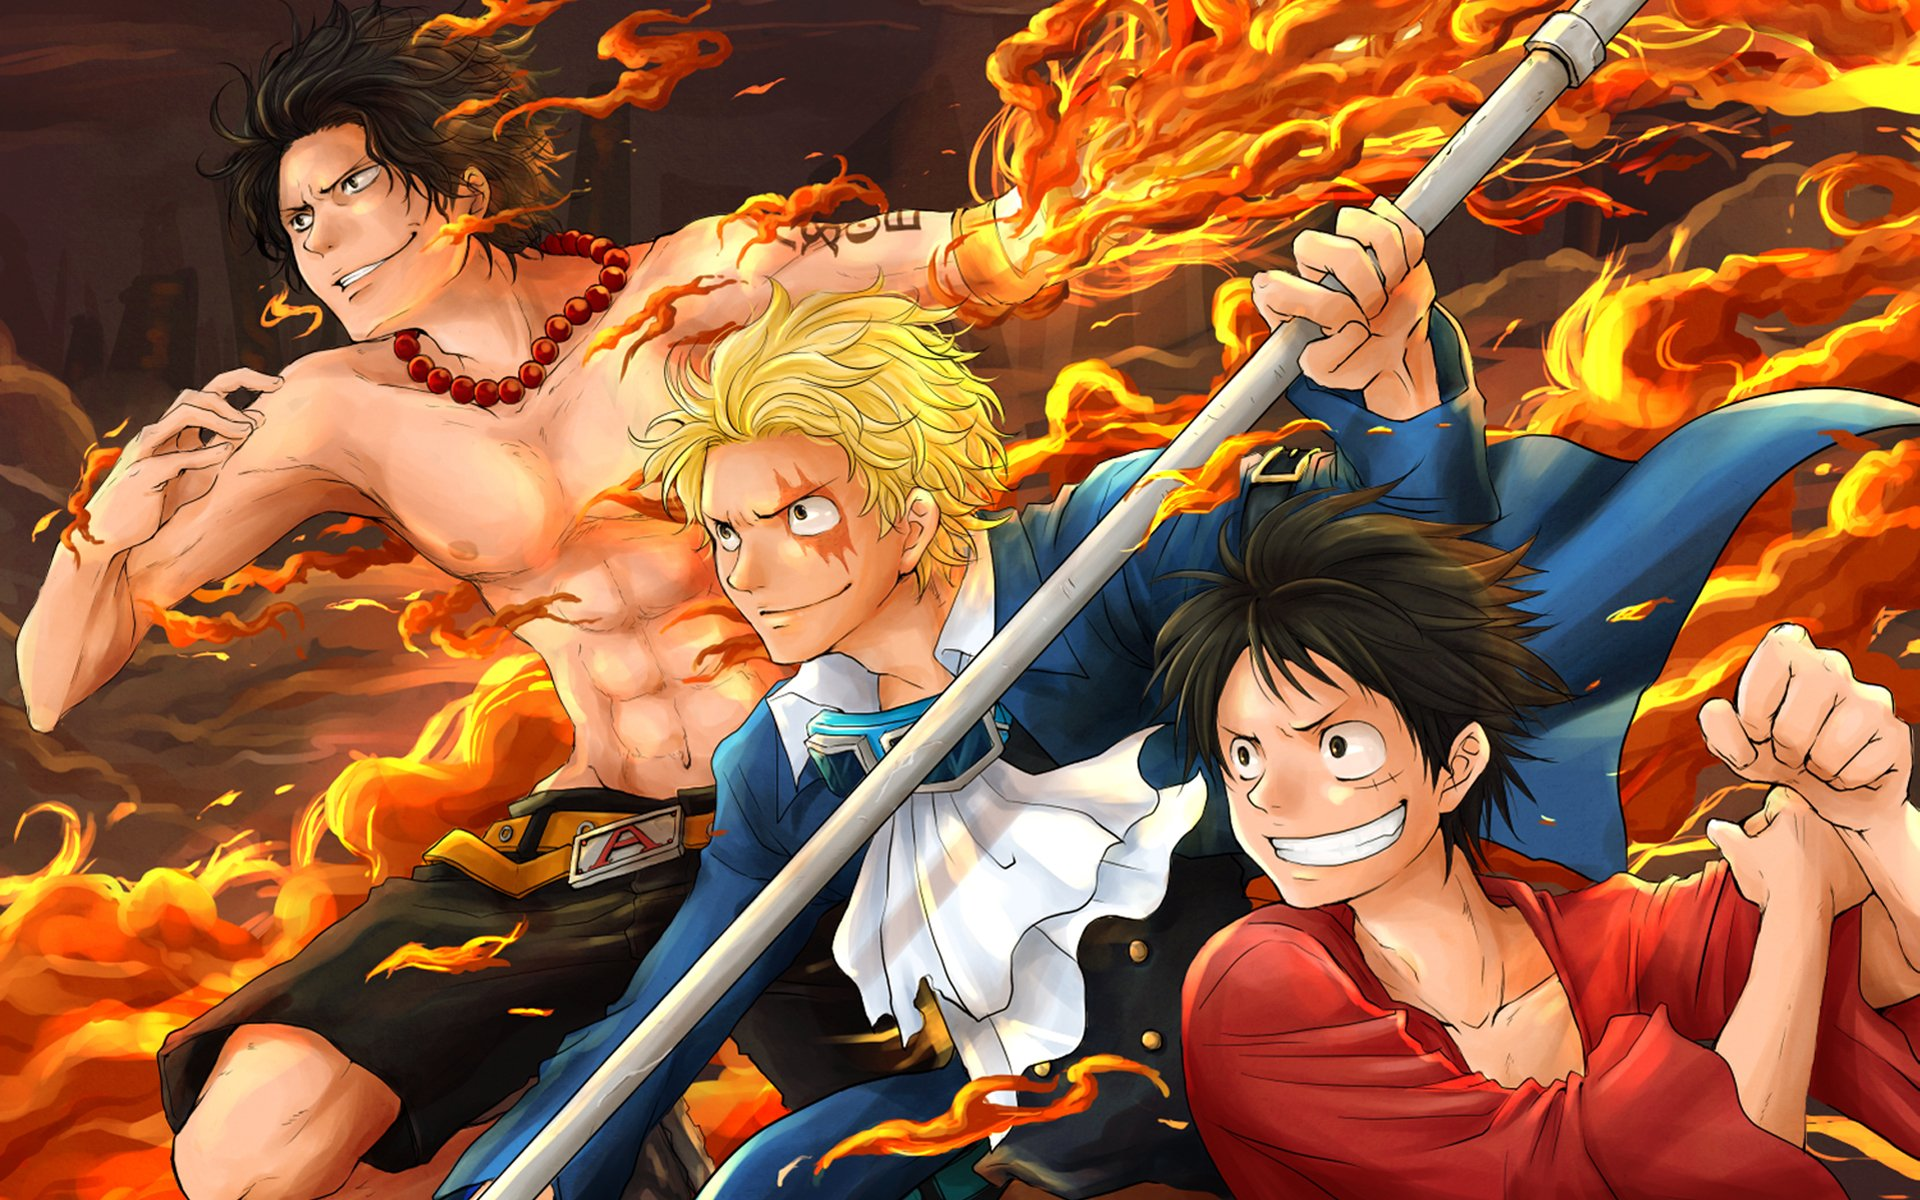 2407 One Piece Hd Wallpapers Background Images Wallpaper Abyss